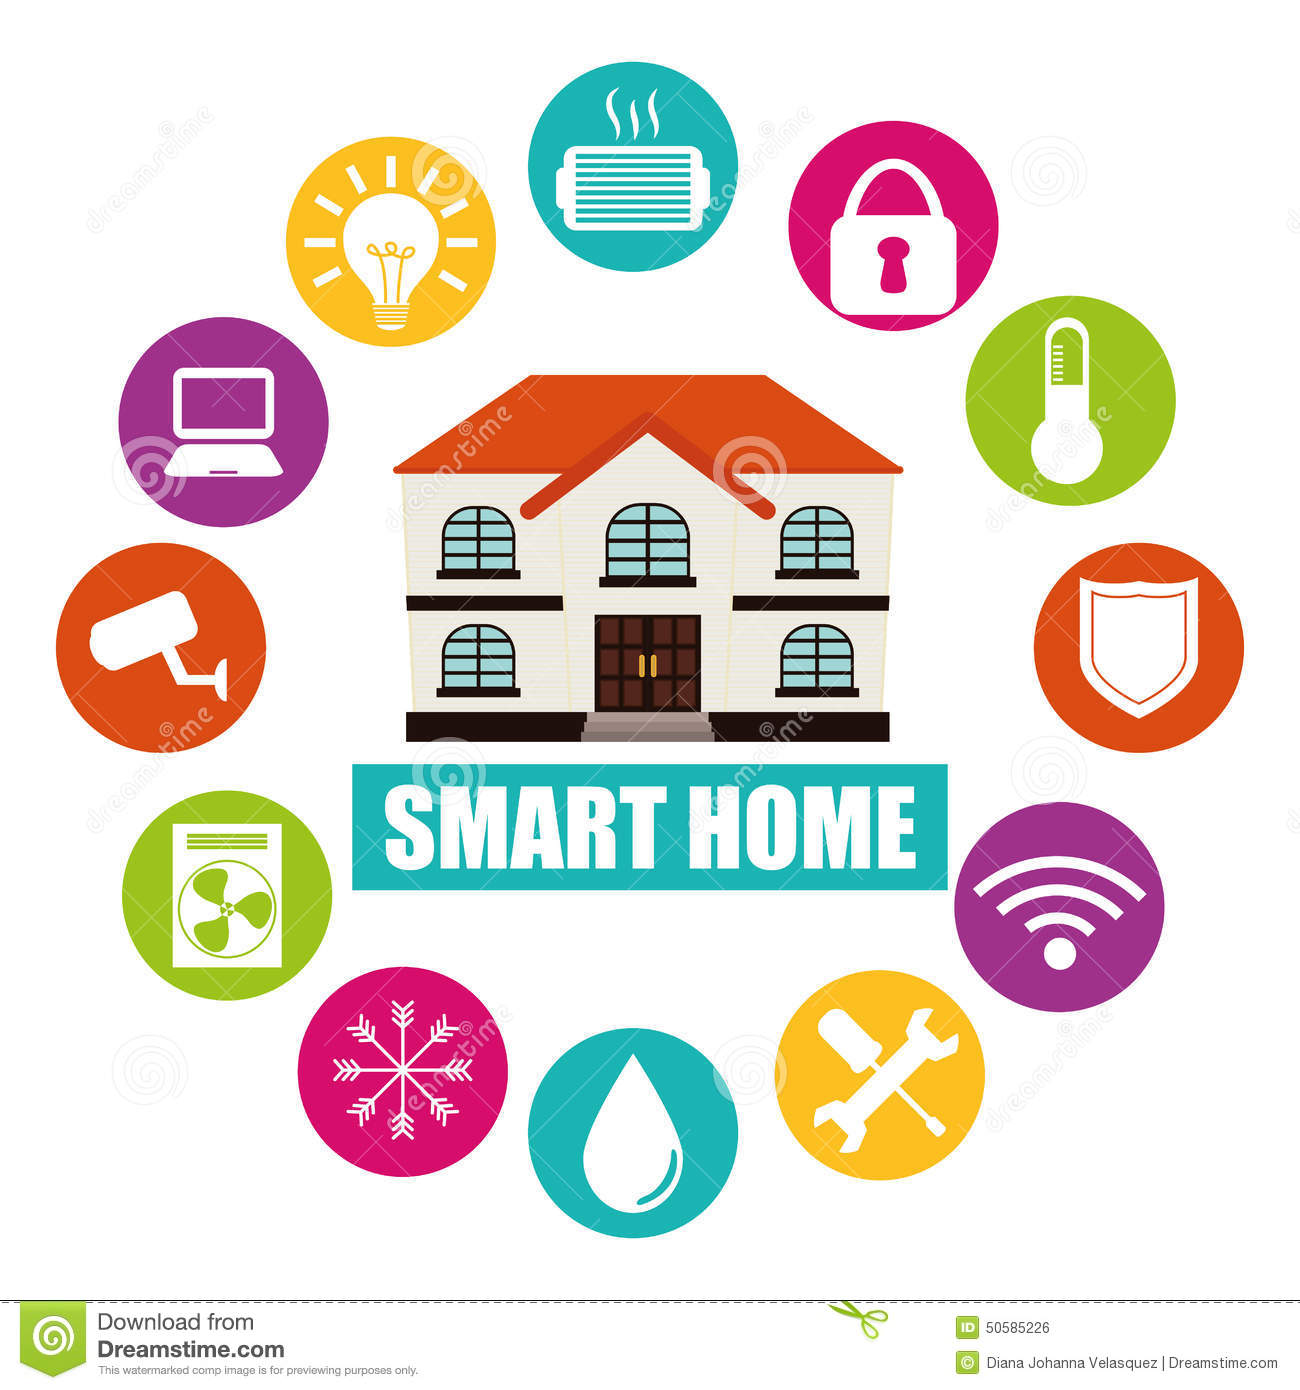 Smart home stock illustration image 50585226 - How to design a smart home easily ...